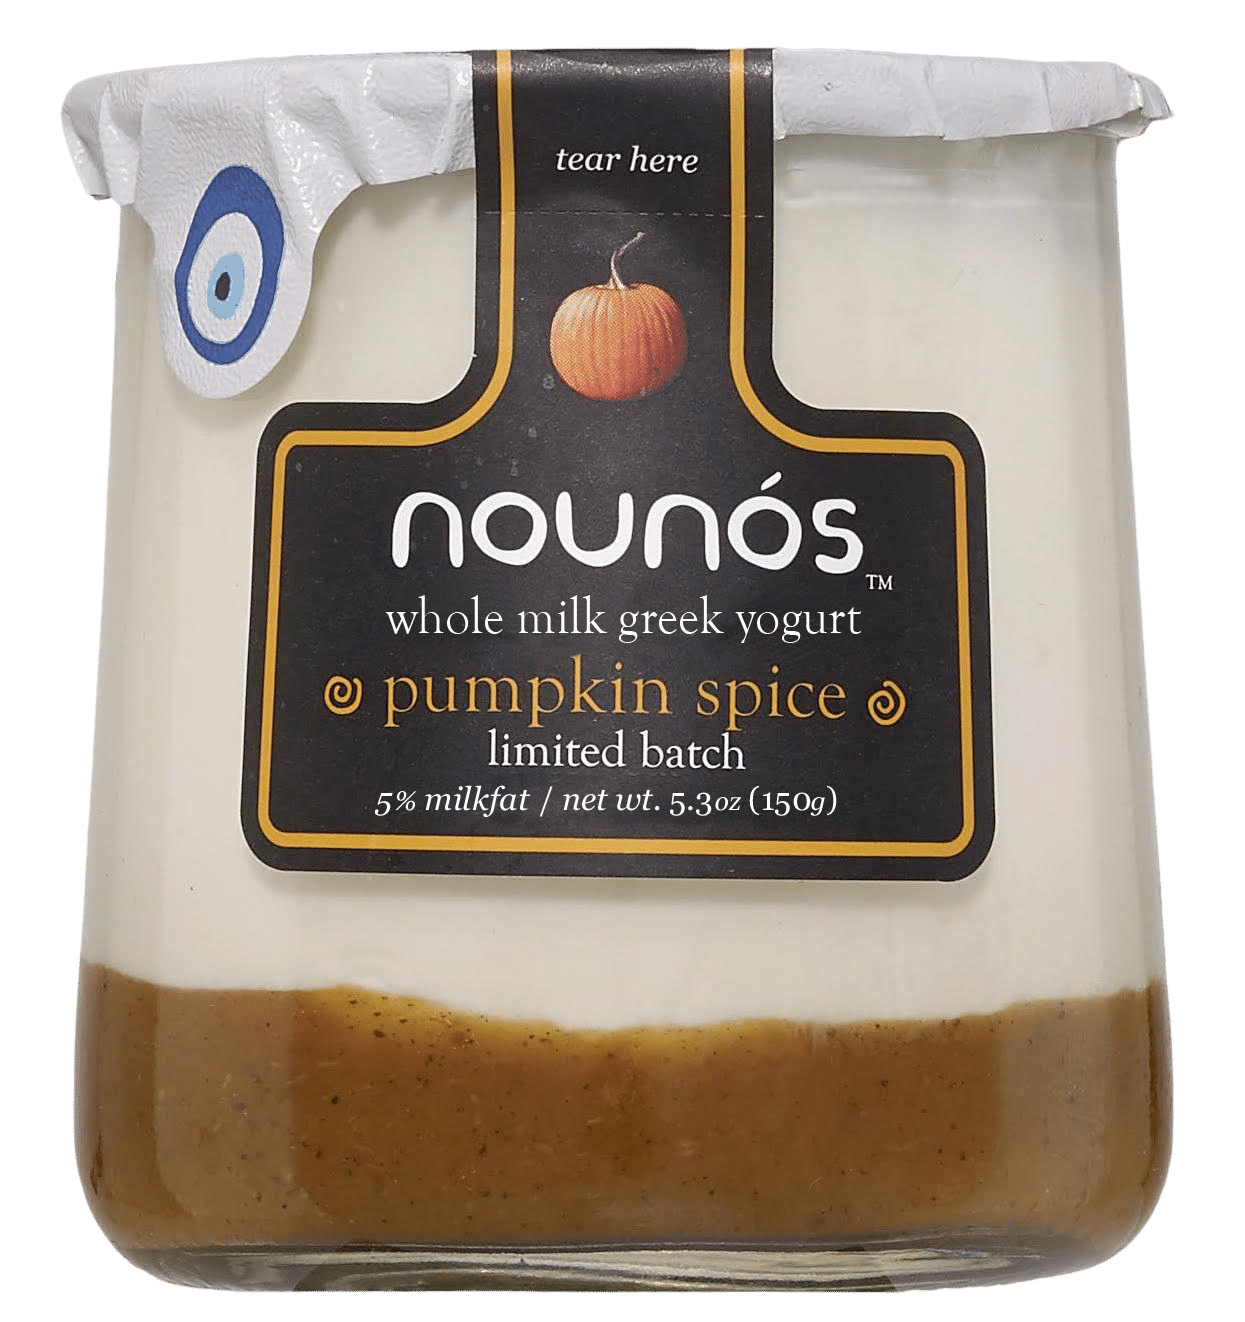 Nounos Creamery to Debut Two Fall Flavors